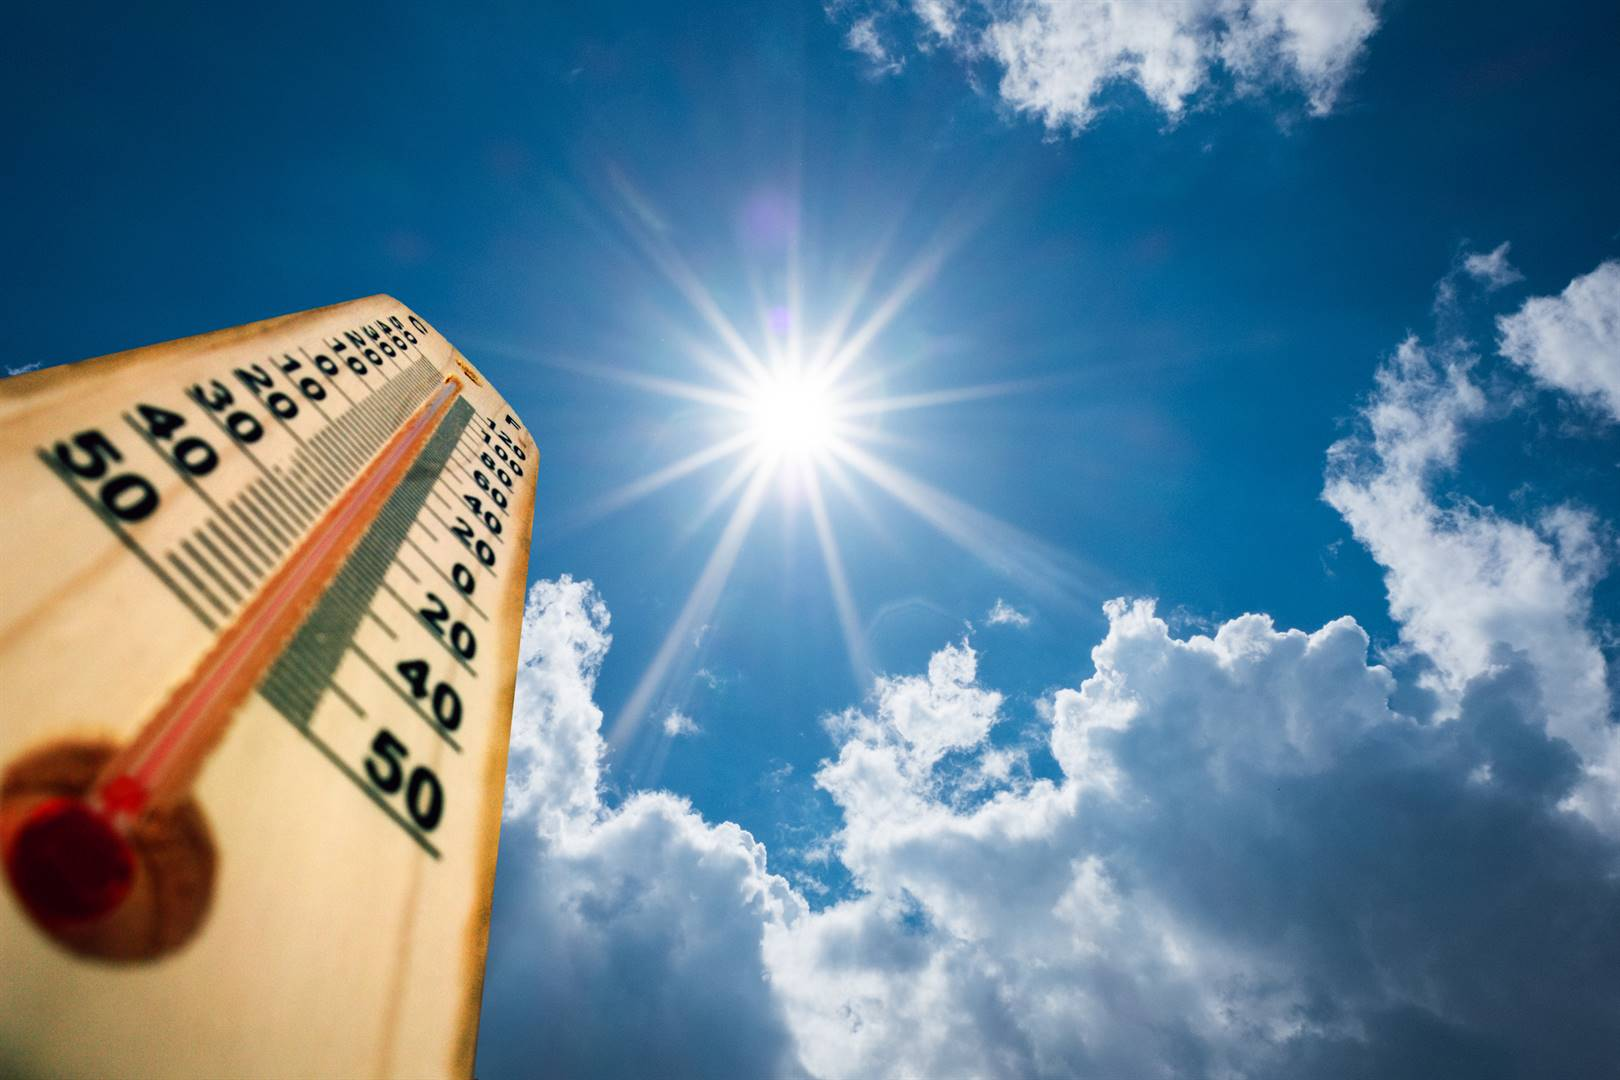 As global temperature rise, some may face a 'cooling gap' where they are unable to cope in a hot environment. Photo: iStock